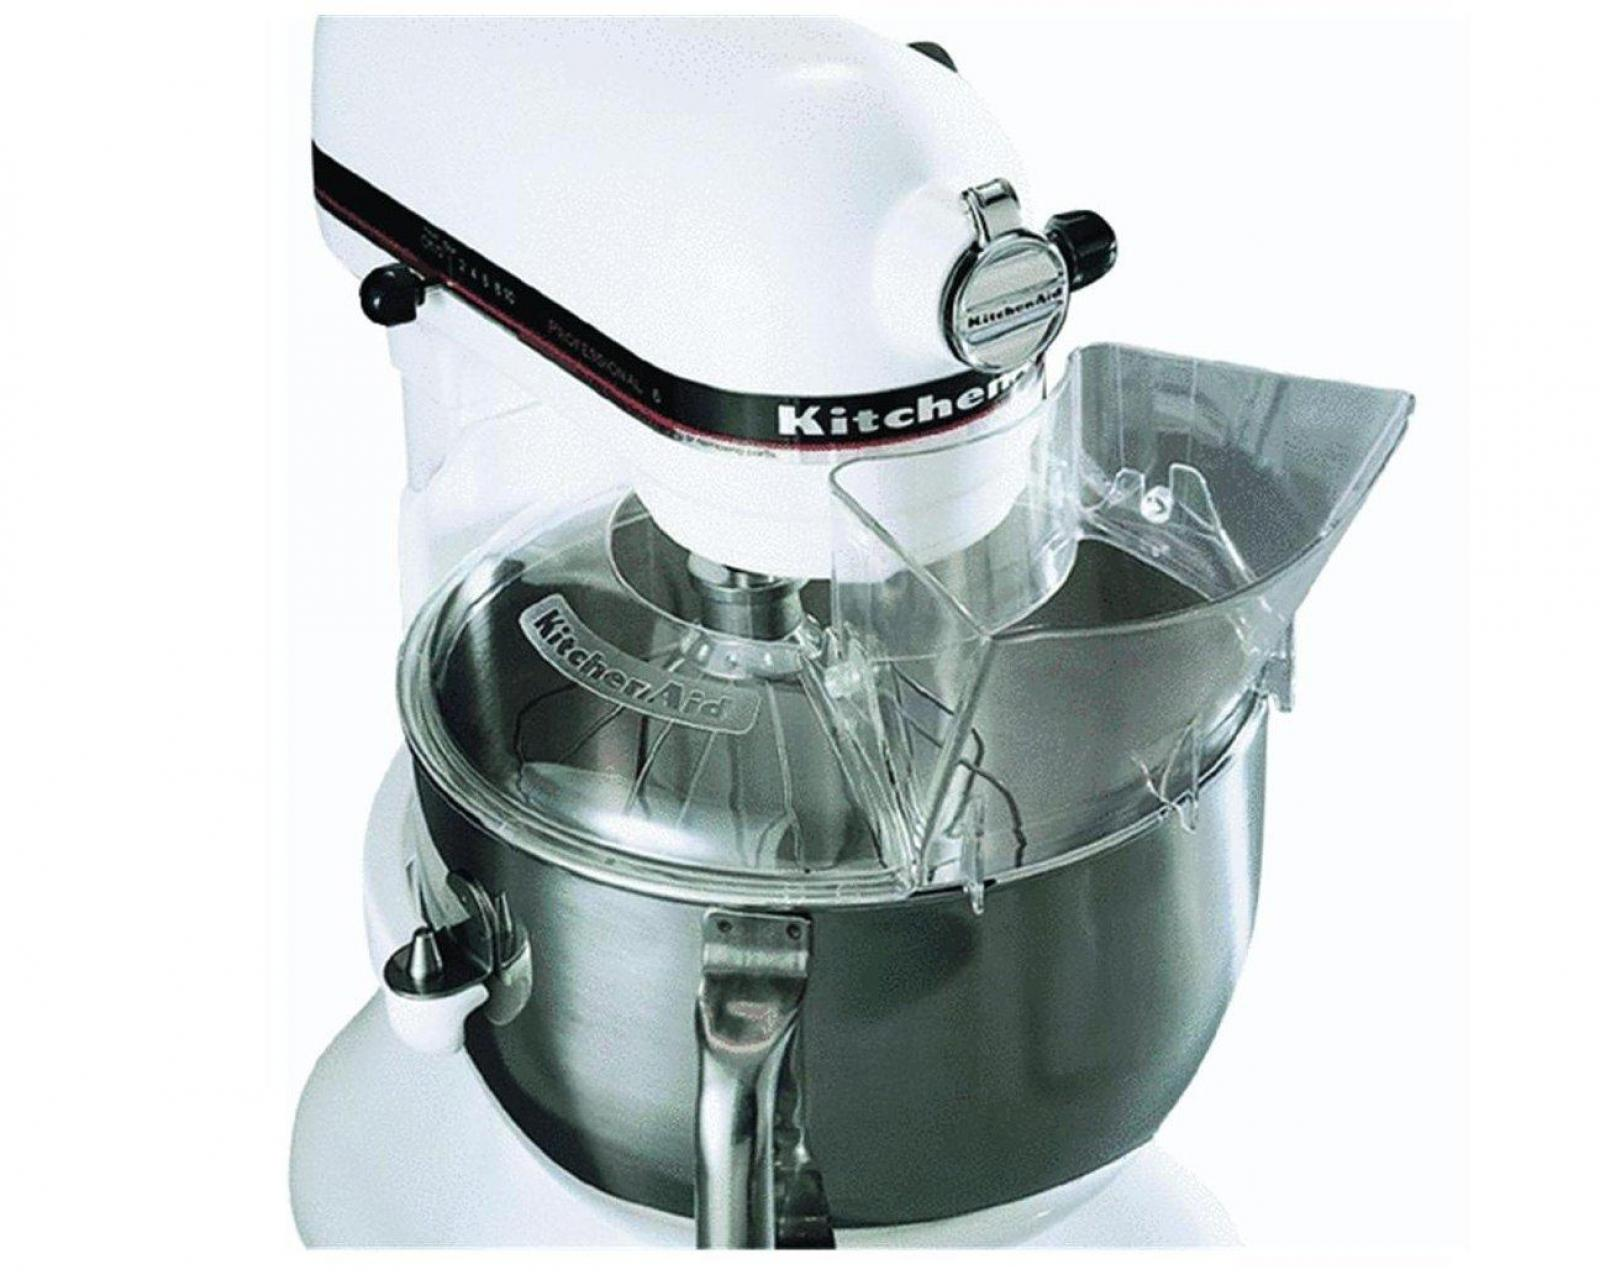 Kitchenaid Pouring Shield 6 Qt - Restaurant Interior Design Drawing •